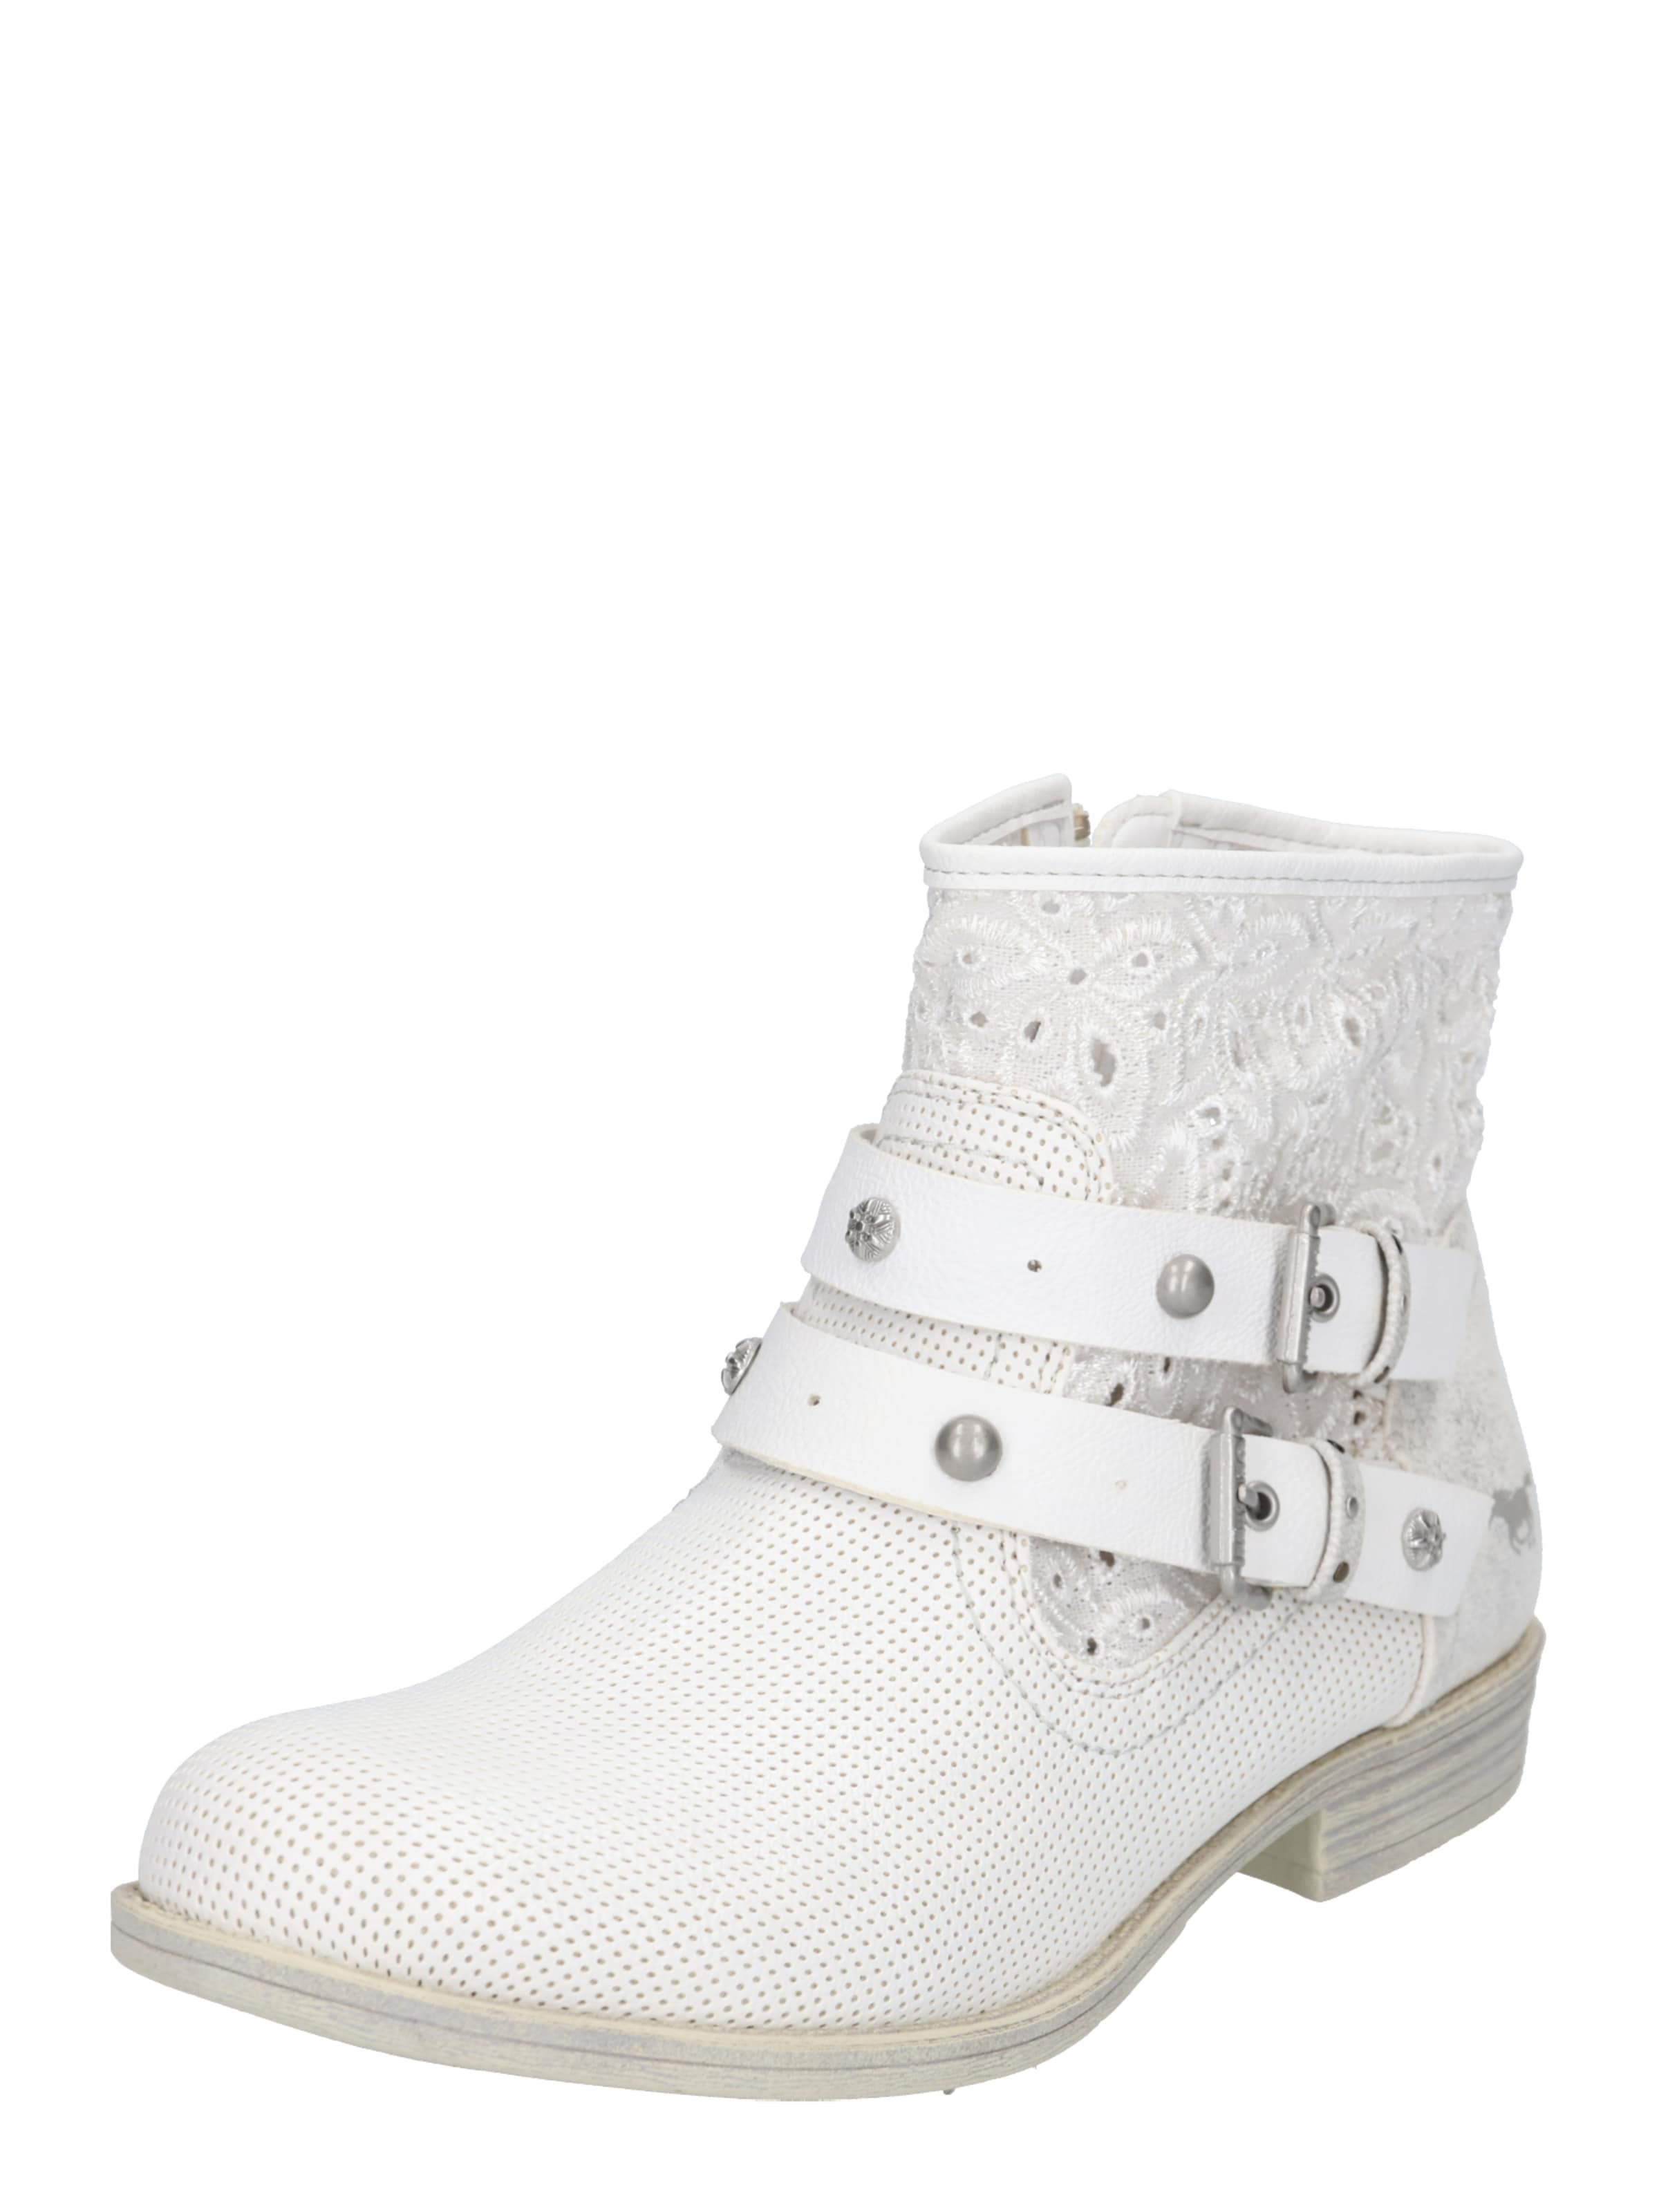 In Mustang Mustang Offwhite Stiefelette In Offwhite Stiefelette Stiefelette Offwhite In In Mustang Stiefelette Mustang wTXukZPiO